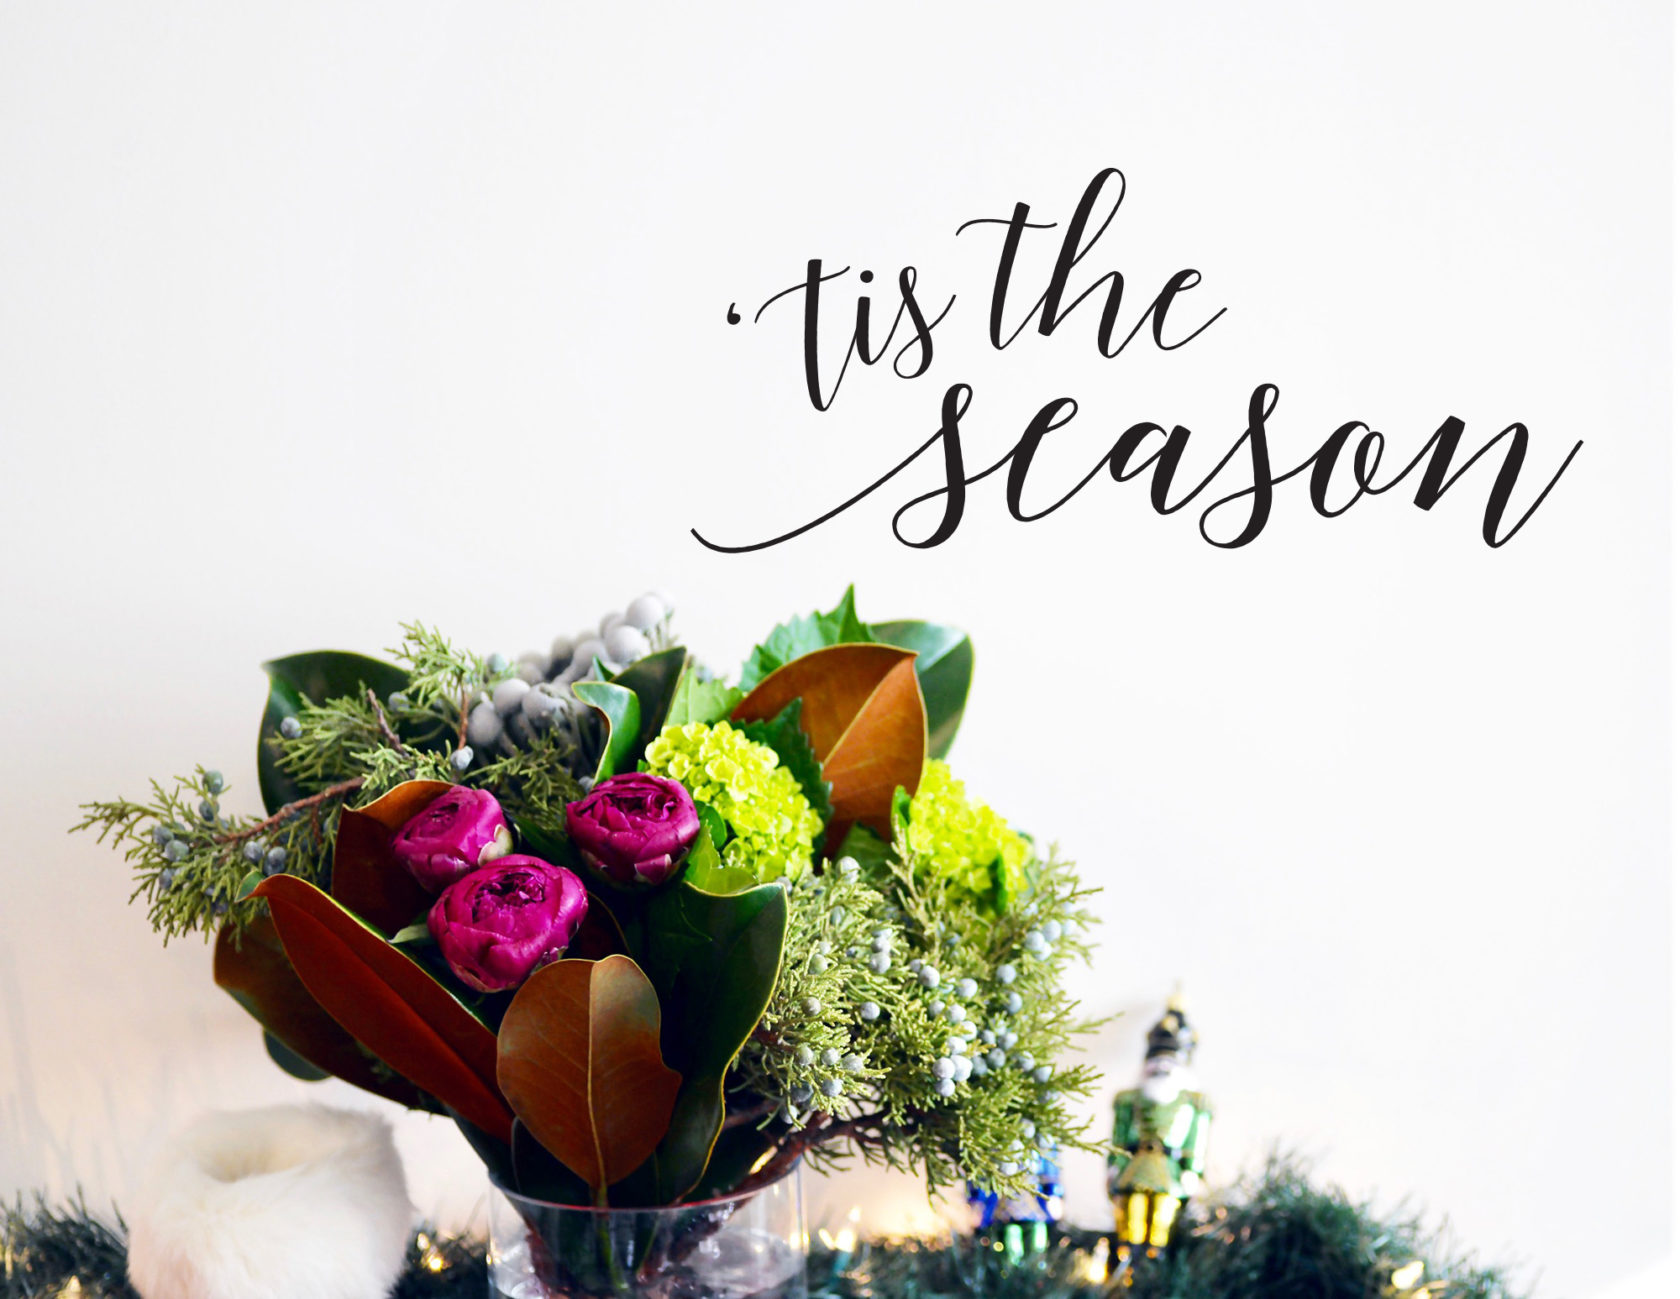 Florious' Tips and Tricks for the Season